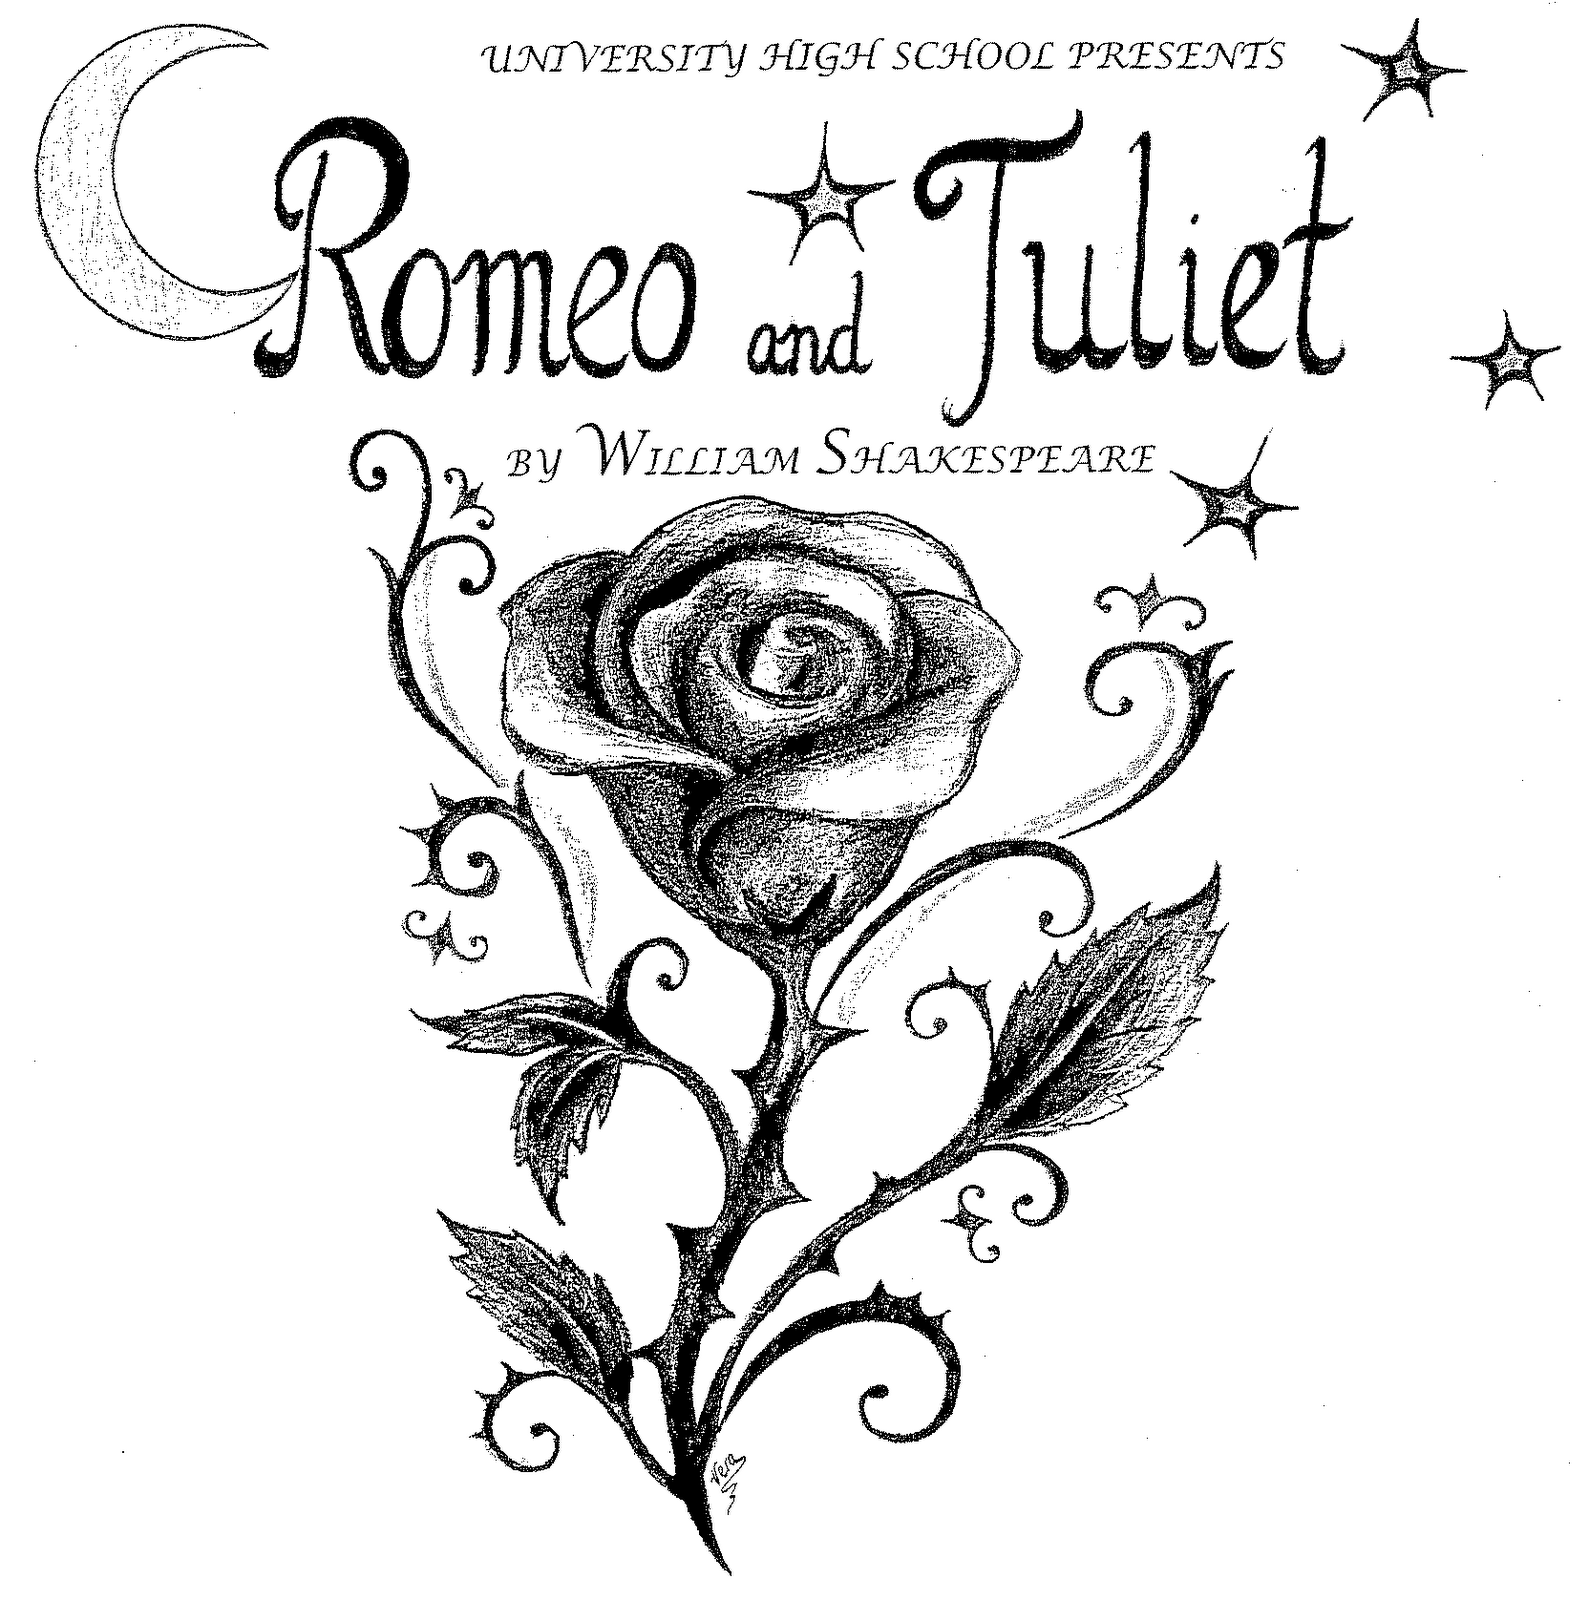 Romeo And Juliet Quotes And Meanings: Forbidden Love Romeo And Juliet Quotes. QuotesGram